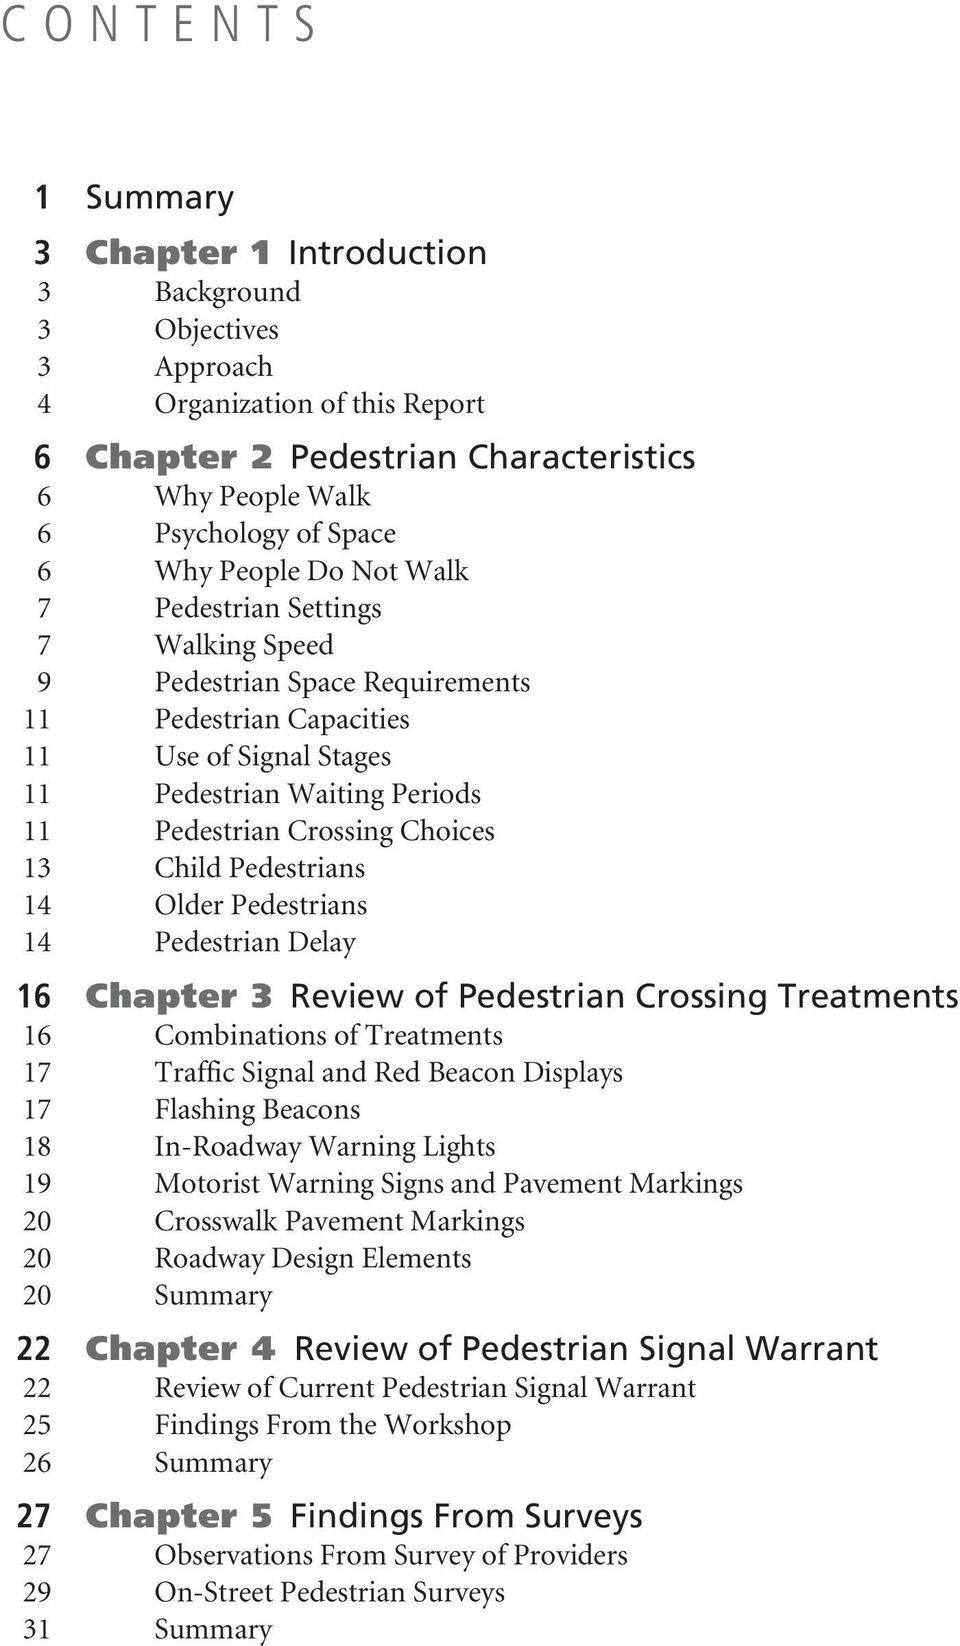 13 Child Pedestrians 14 Older Pedestrians 14 Pedestrian Delay 16 Chapter 3 Review of Pedestrian Crossing Treatments 16 Combinations of Treatments 17 Traffic Signal and Red Beacon Displays 17 Flashing